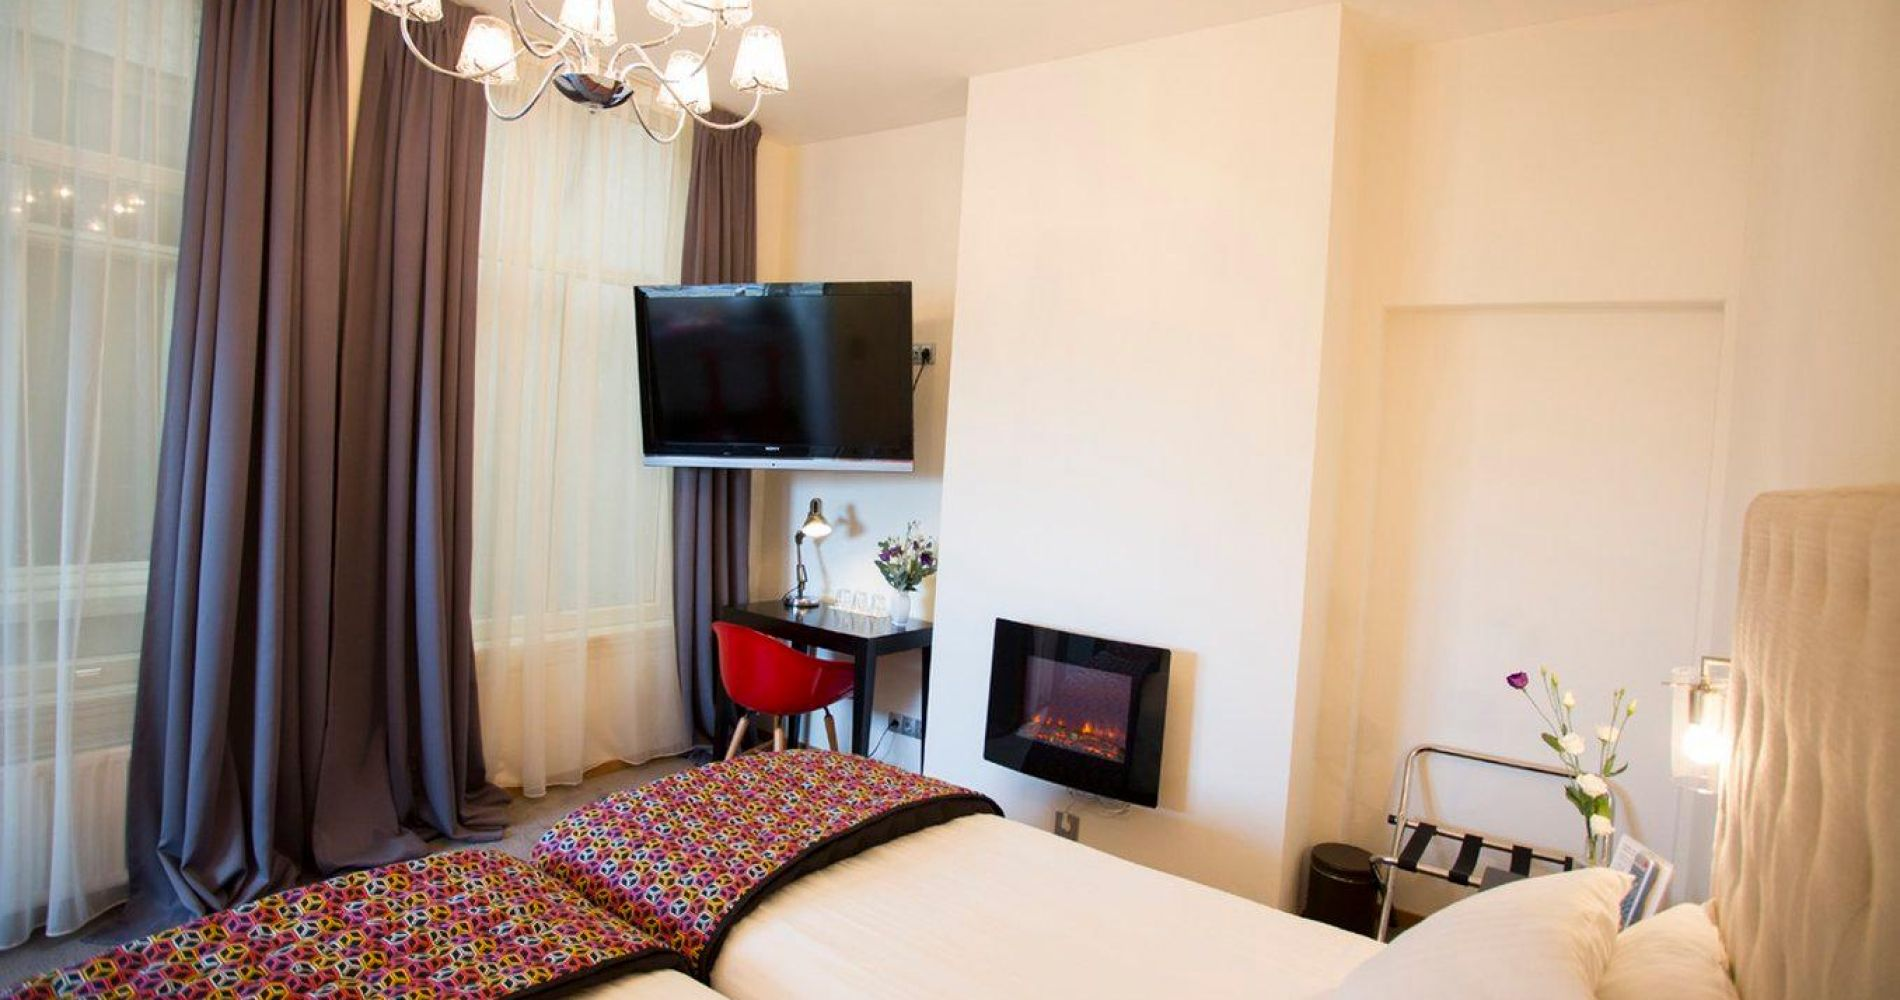 quentin amsterdam hotel best hotels and overnight stays by tinggly. Black Bedroom Furniture Sets. Home Design Ideas